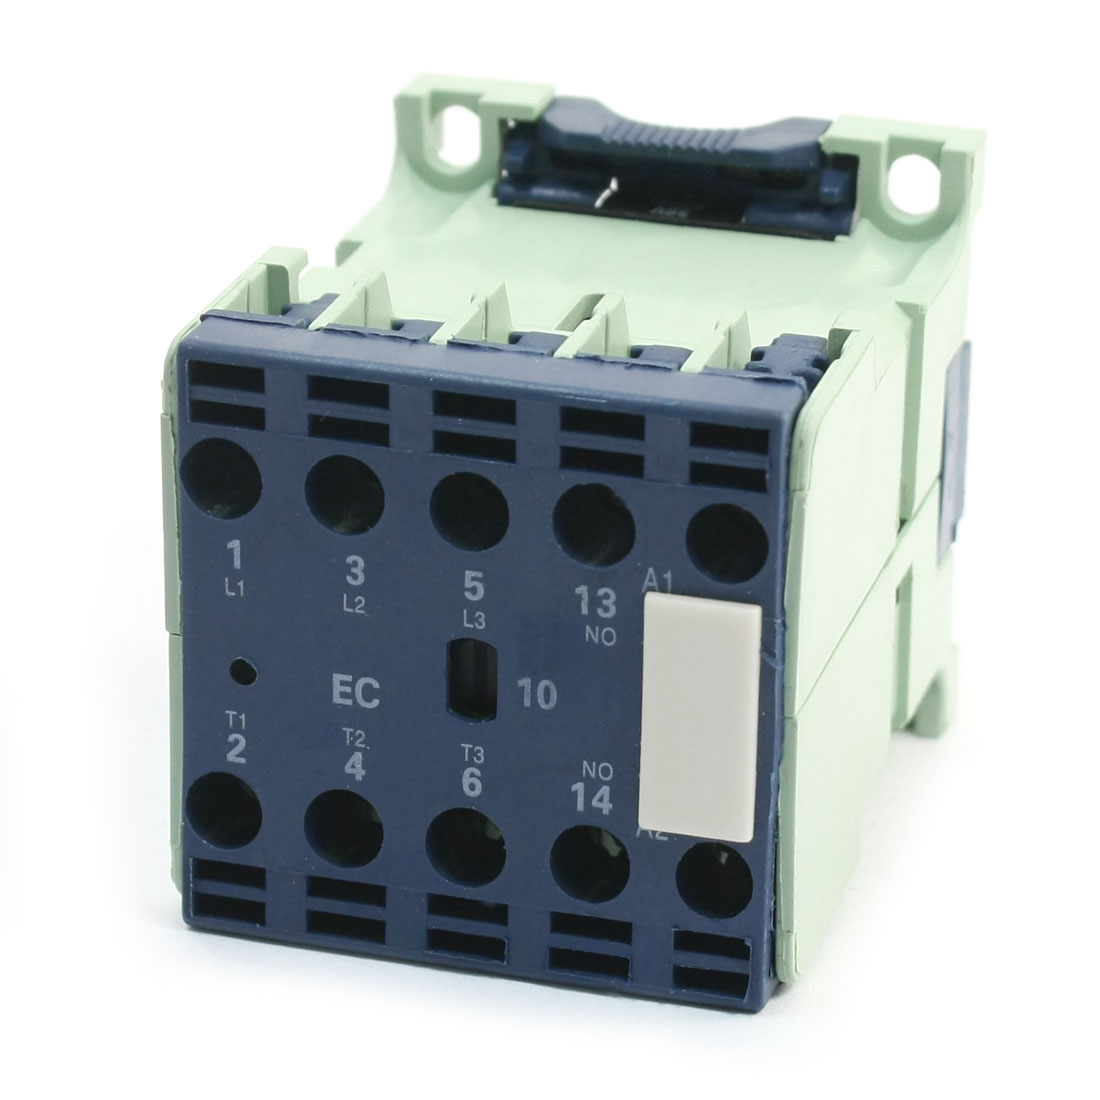 3P 1NO 36V Coil 40mm x 35mm DIN Rail Mounting AC Contactor CJX2-1210E